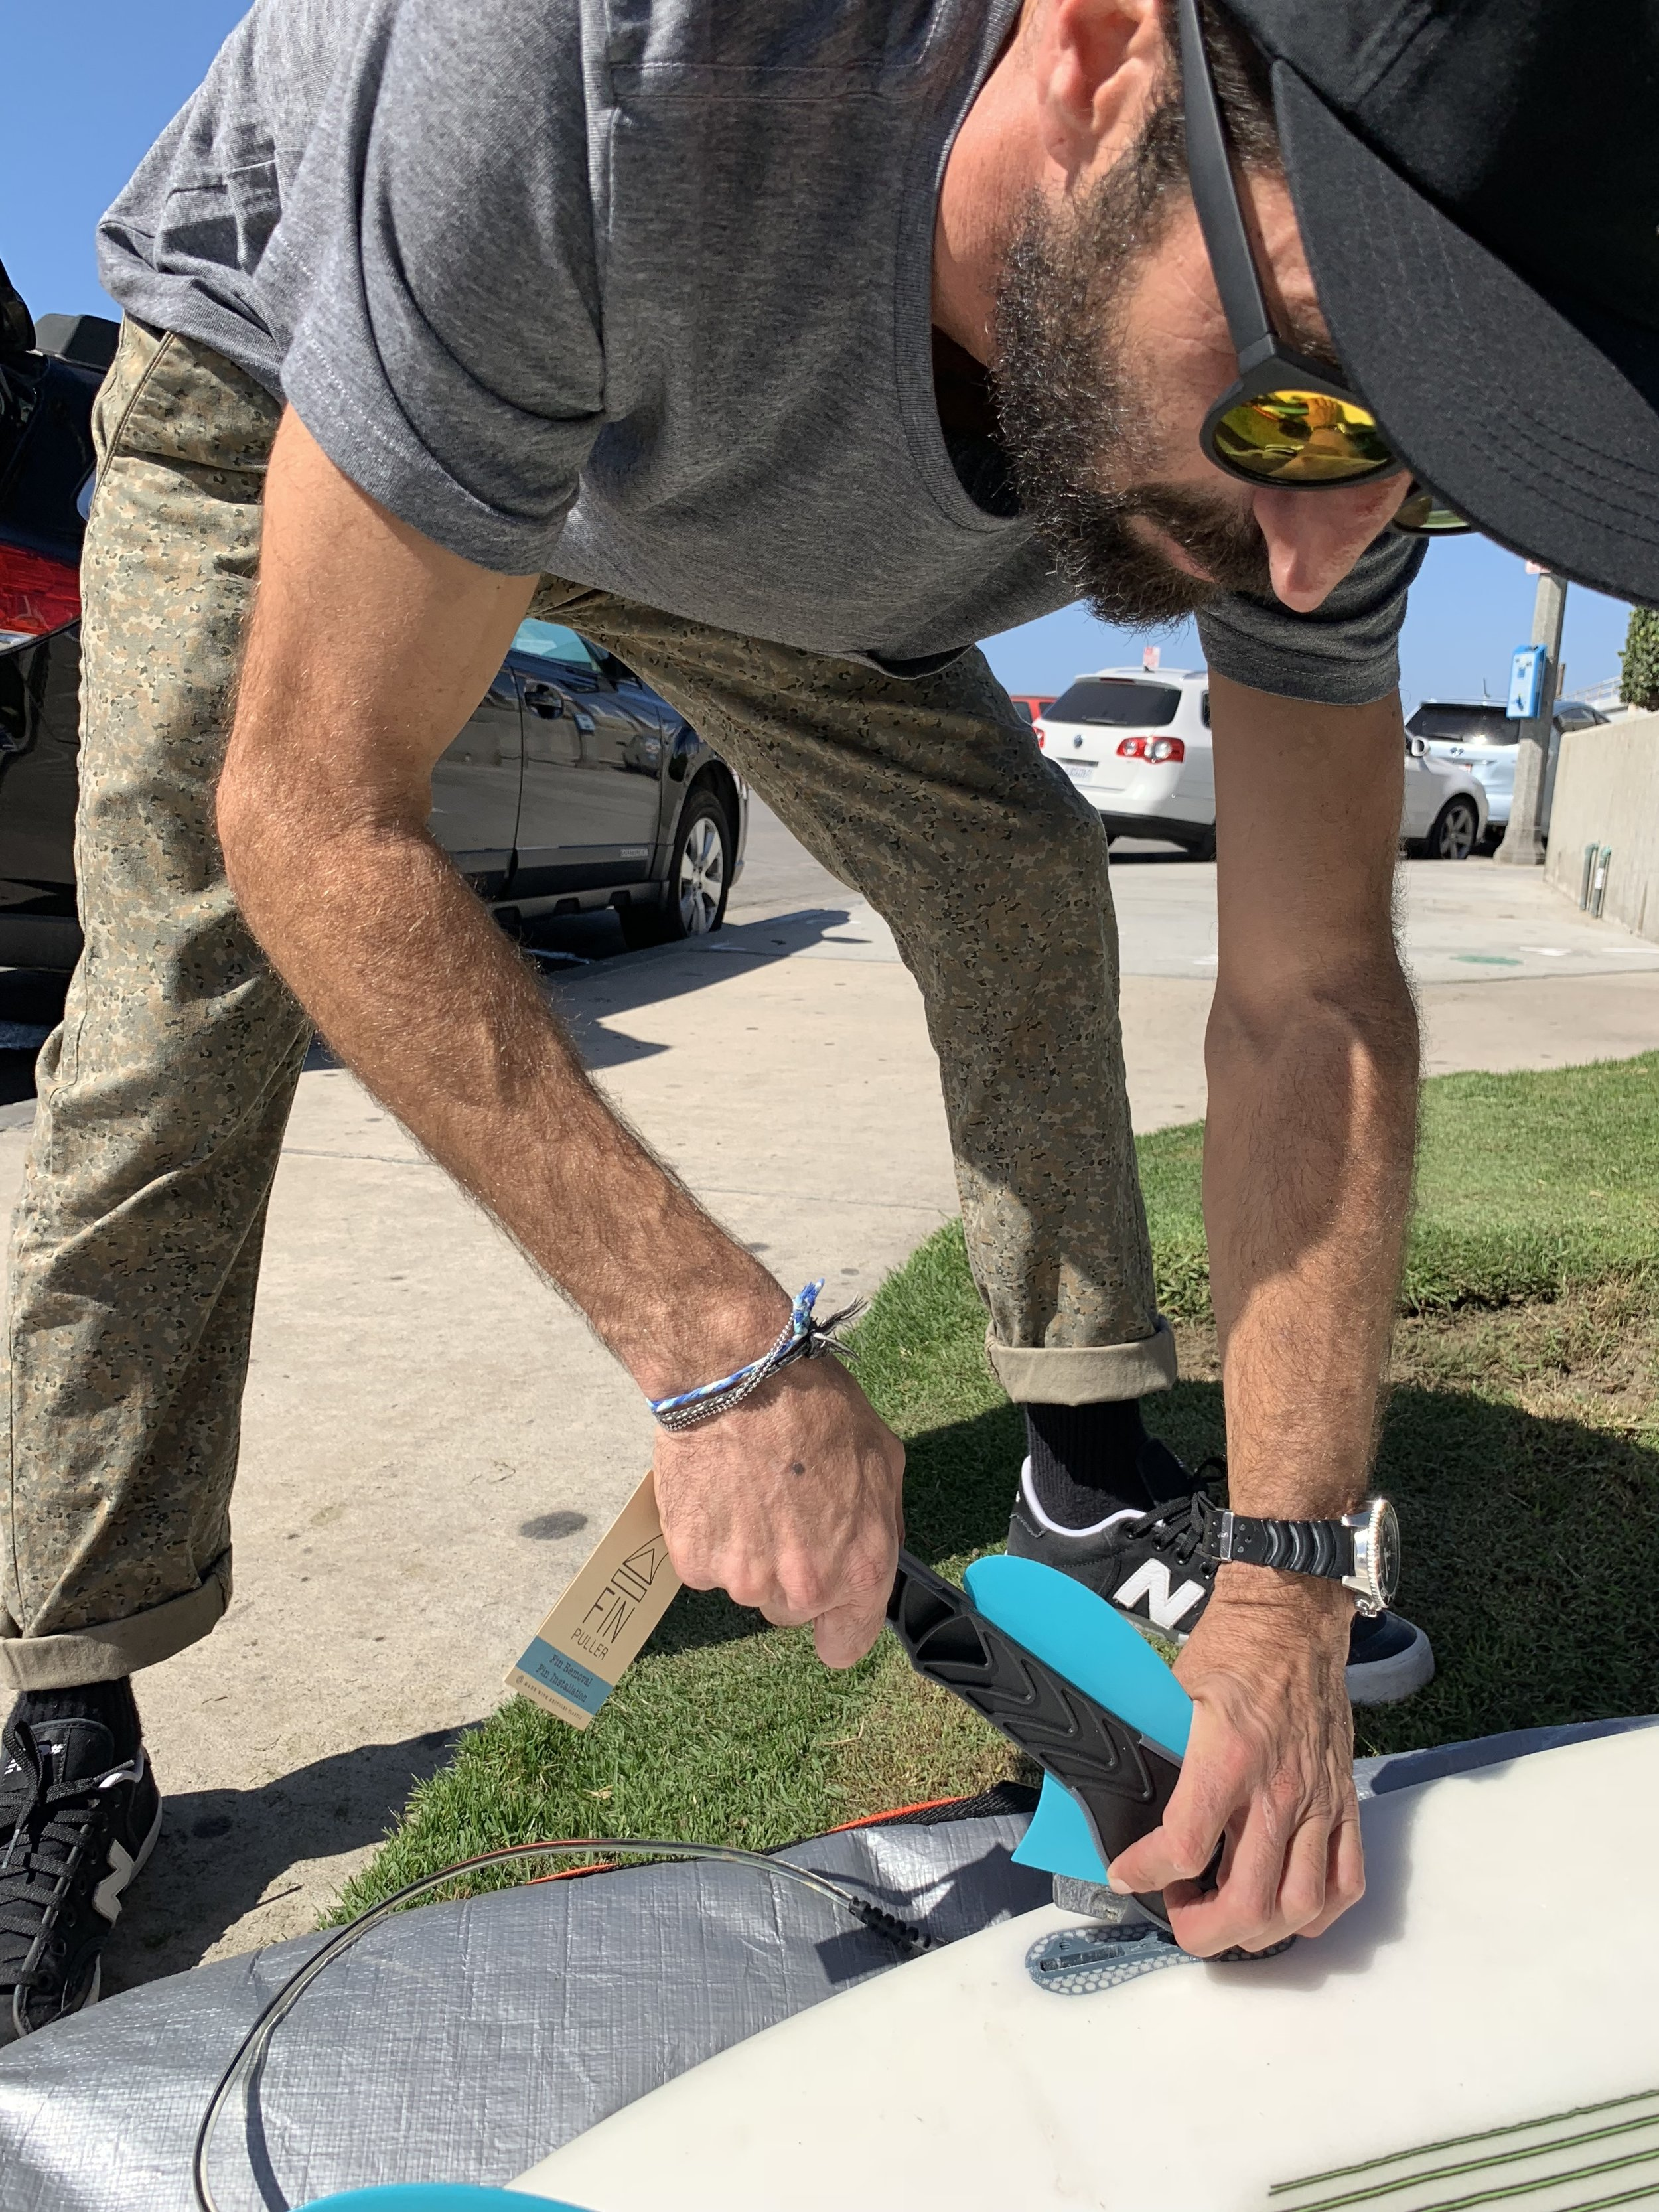 Guri (owner, designer, surfer) showing how to takeout a FCS2 fin by putting the Fin Puller under the fin. Sounds like common sense but it takes a few goes to figure out how to use the tool properly.